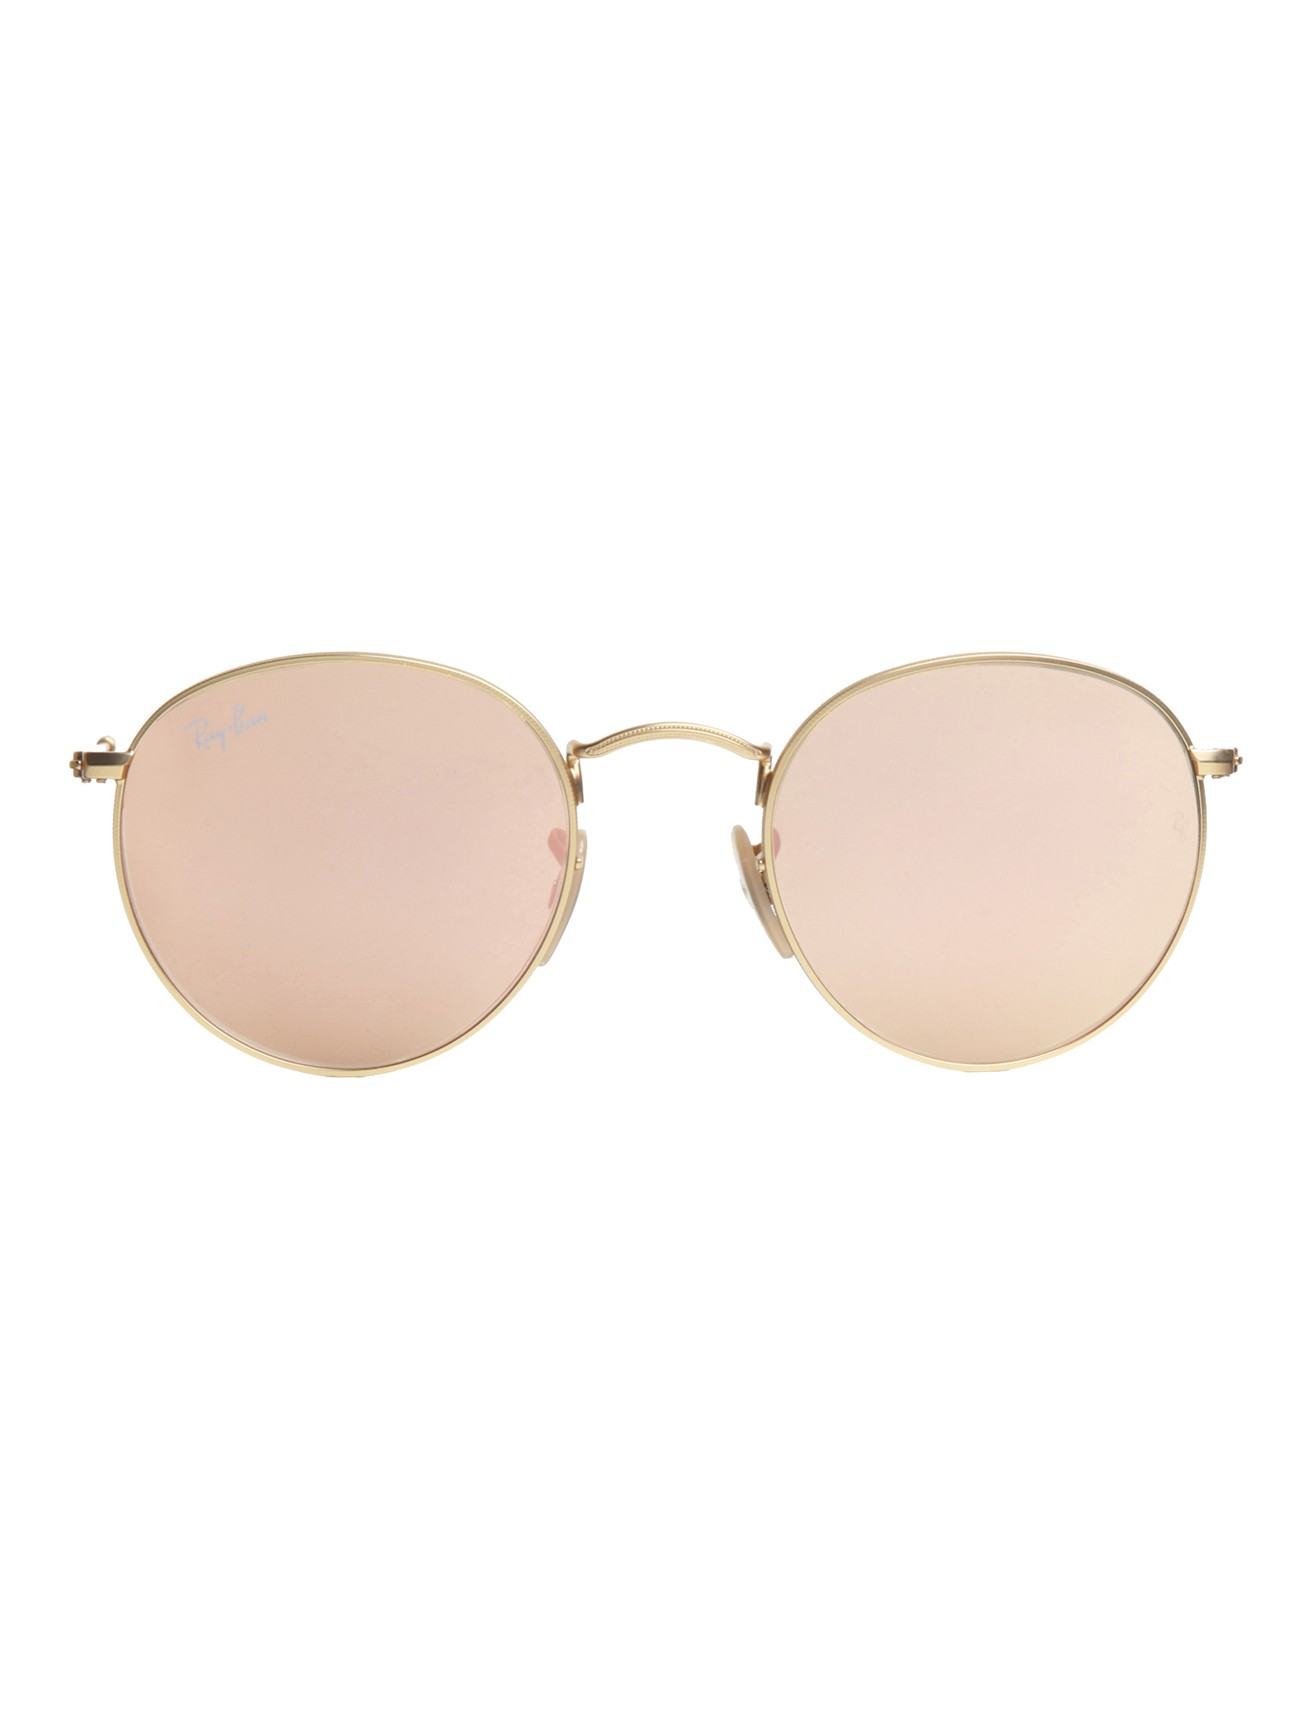 Ray ban mirrored sunglasses pink for Mirror sunglasses